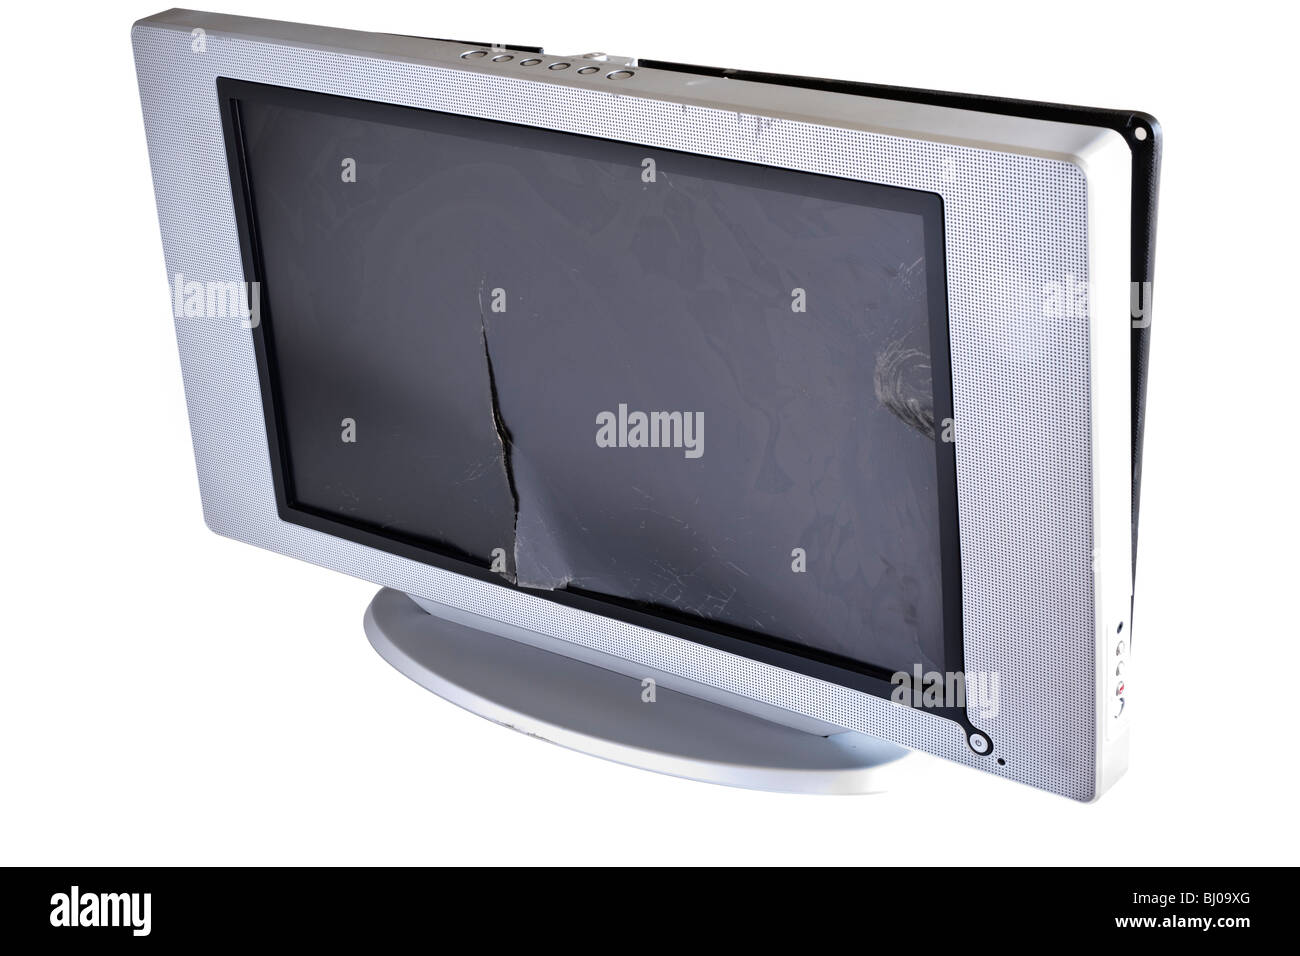 Smashed LCD television - Stock Image